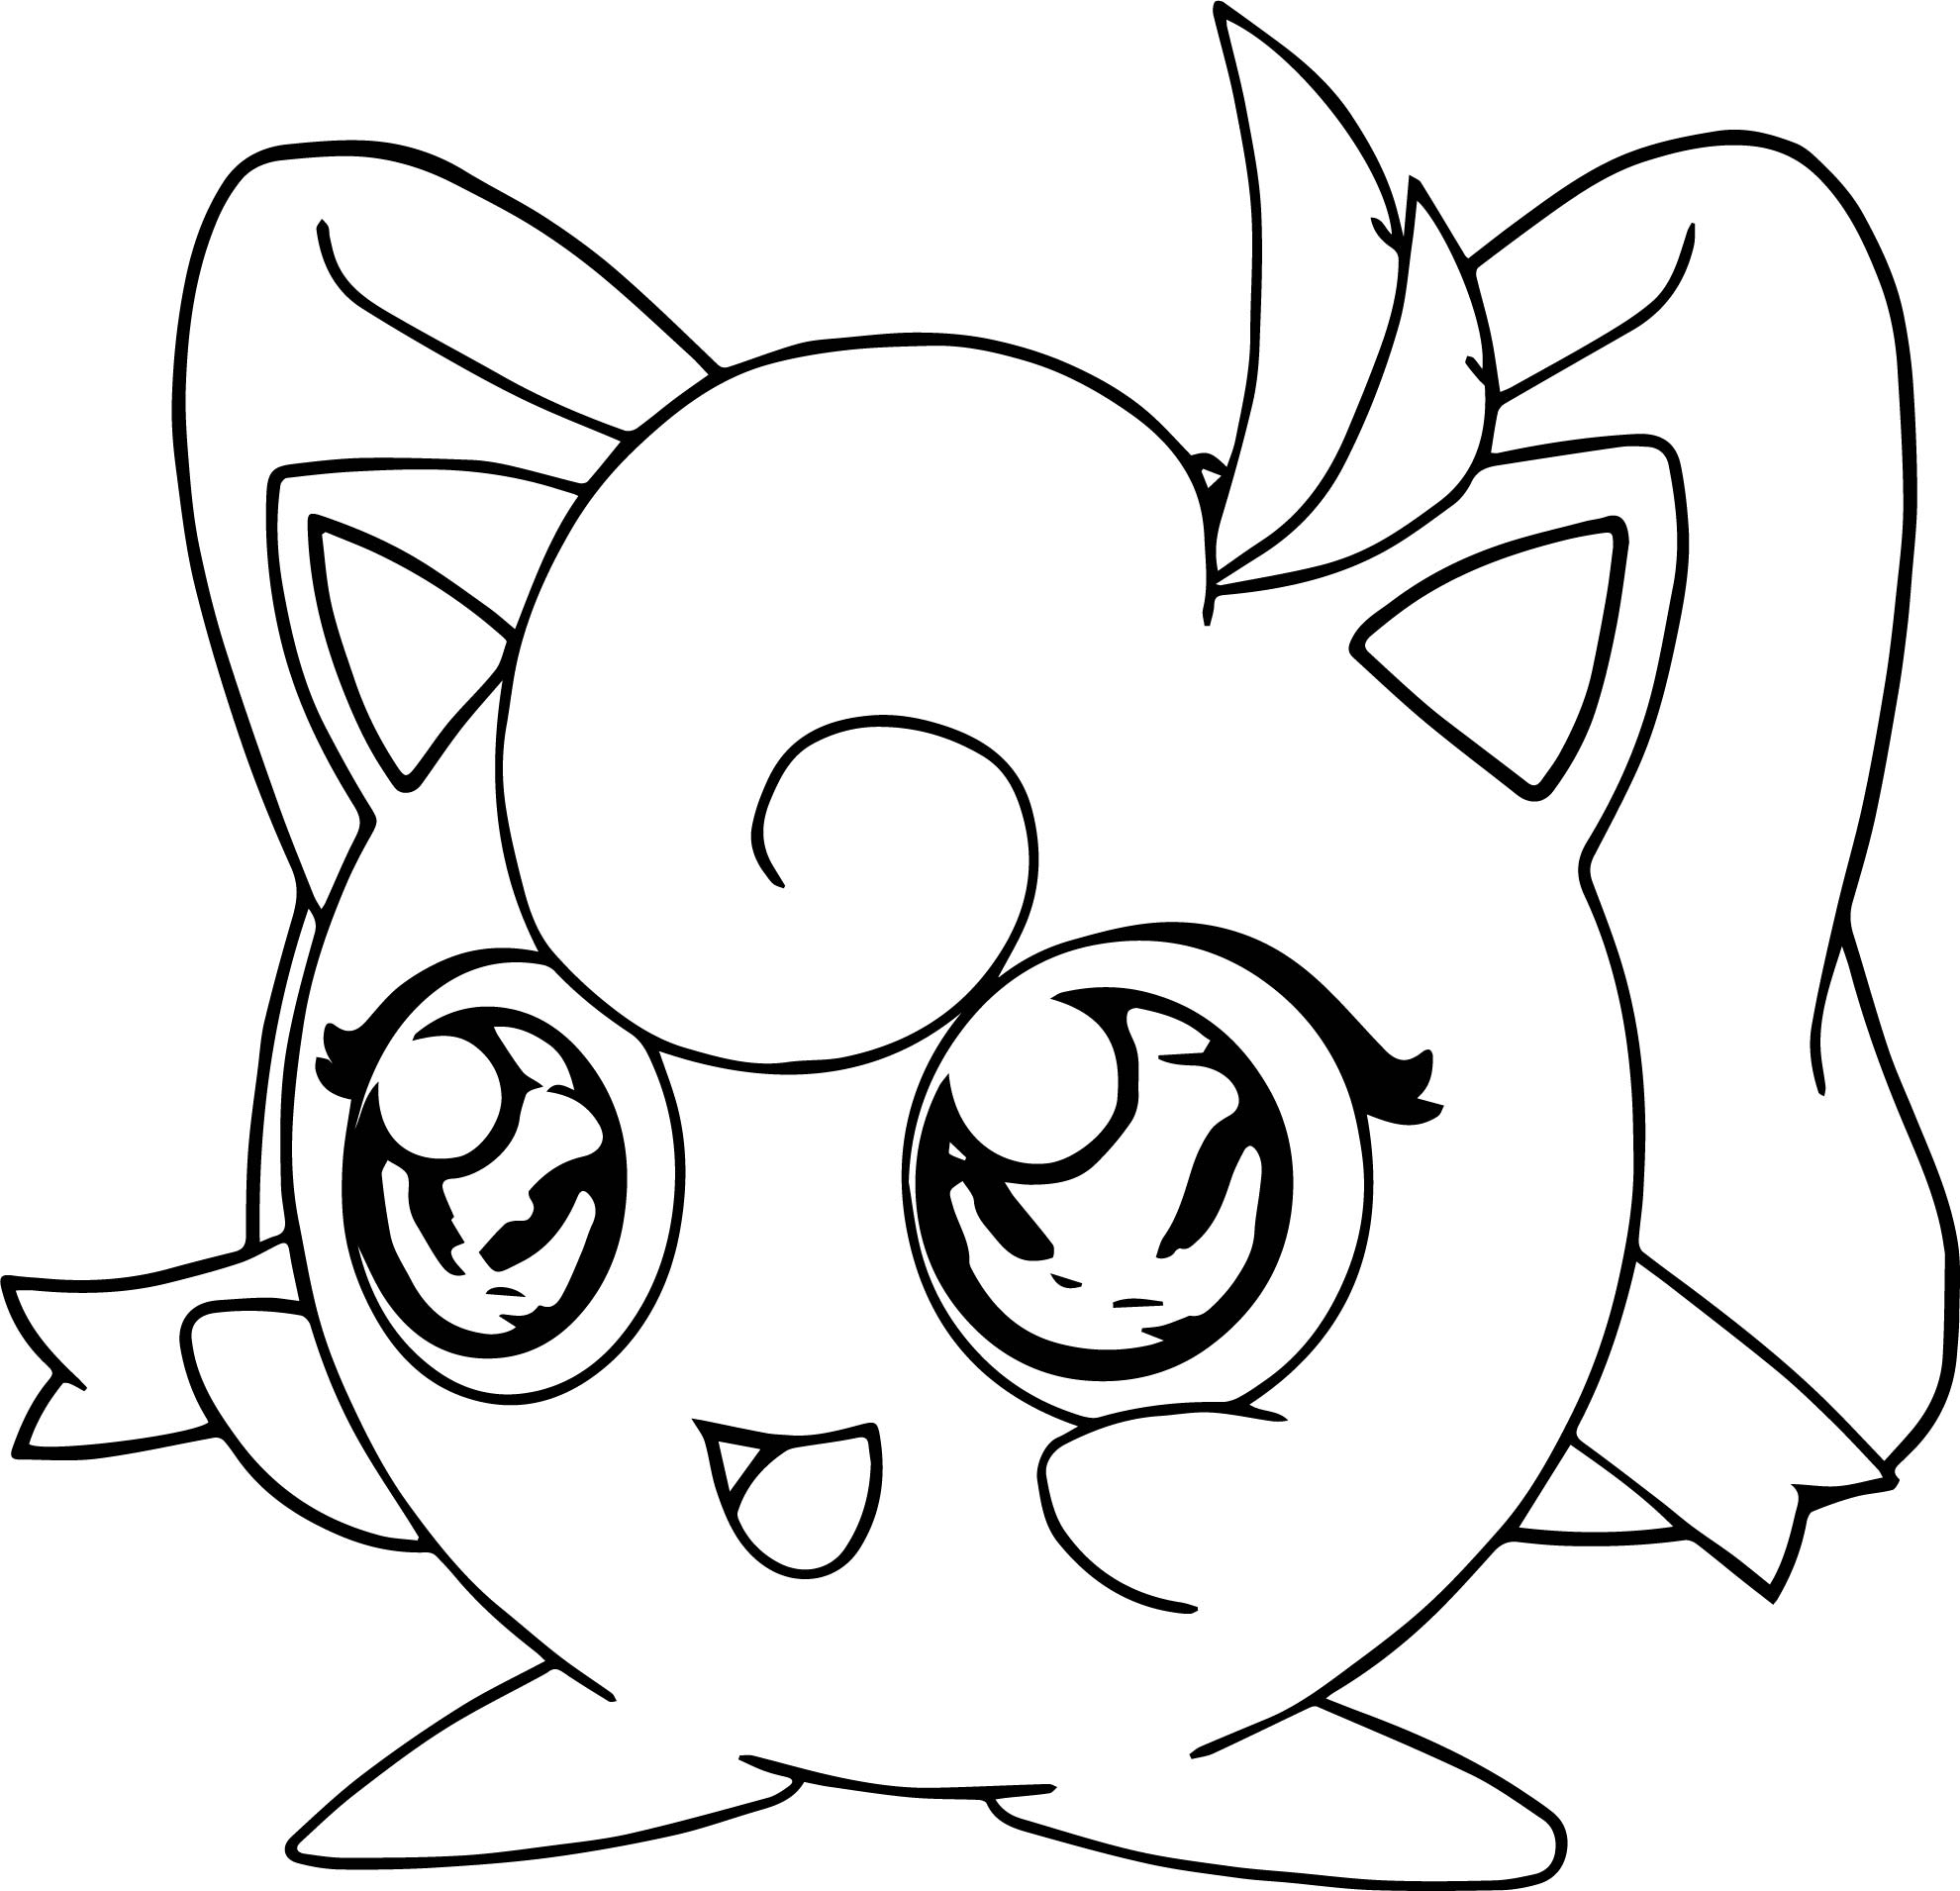 jigglypuff coloring page - girl jigglypuff coloring page